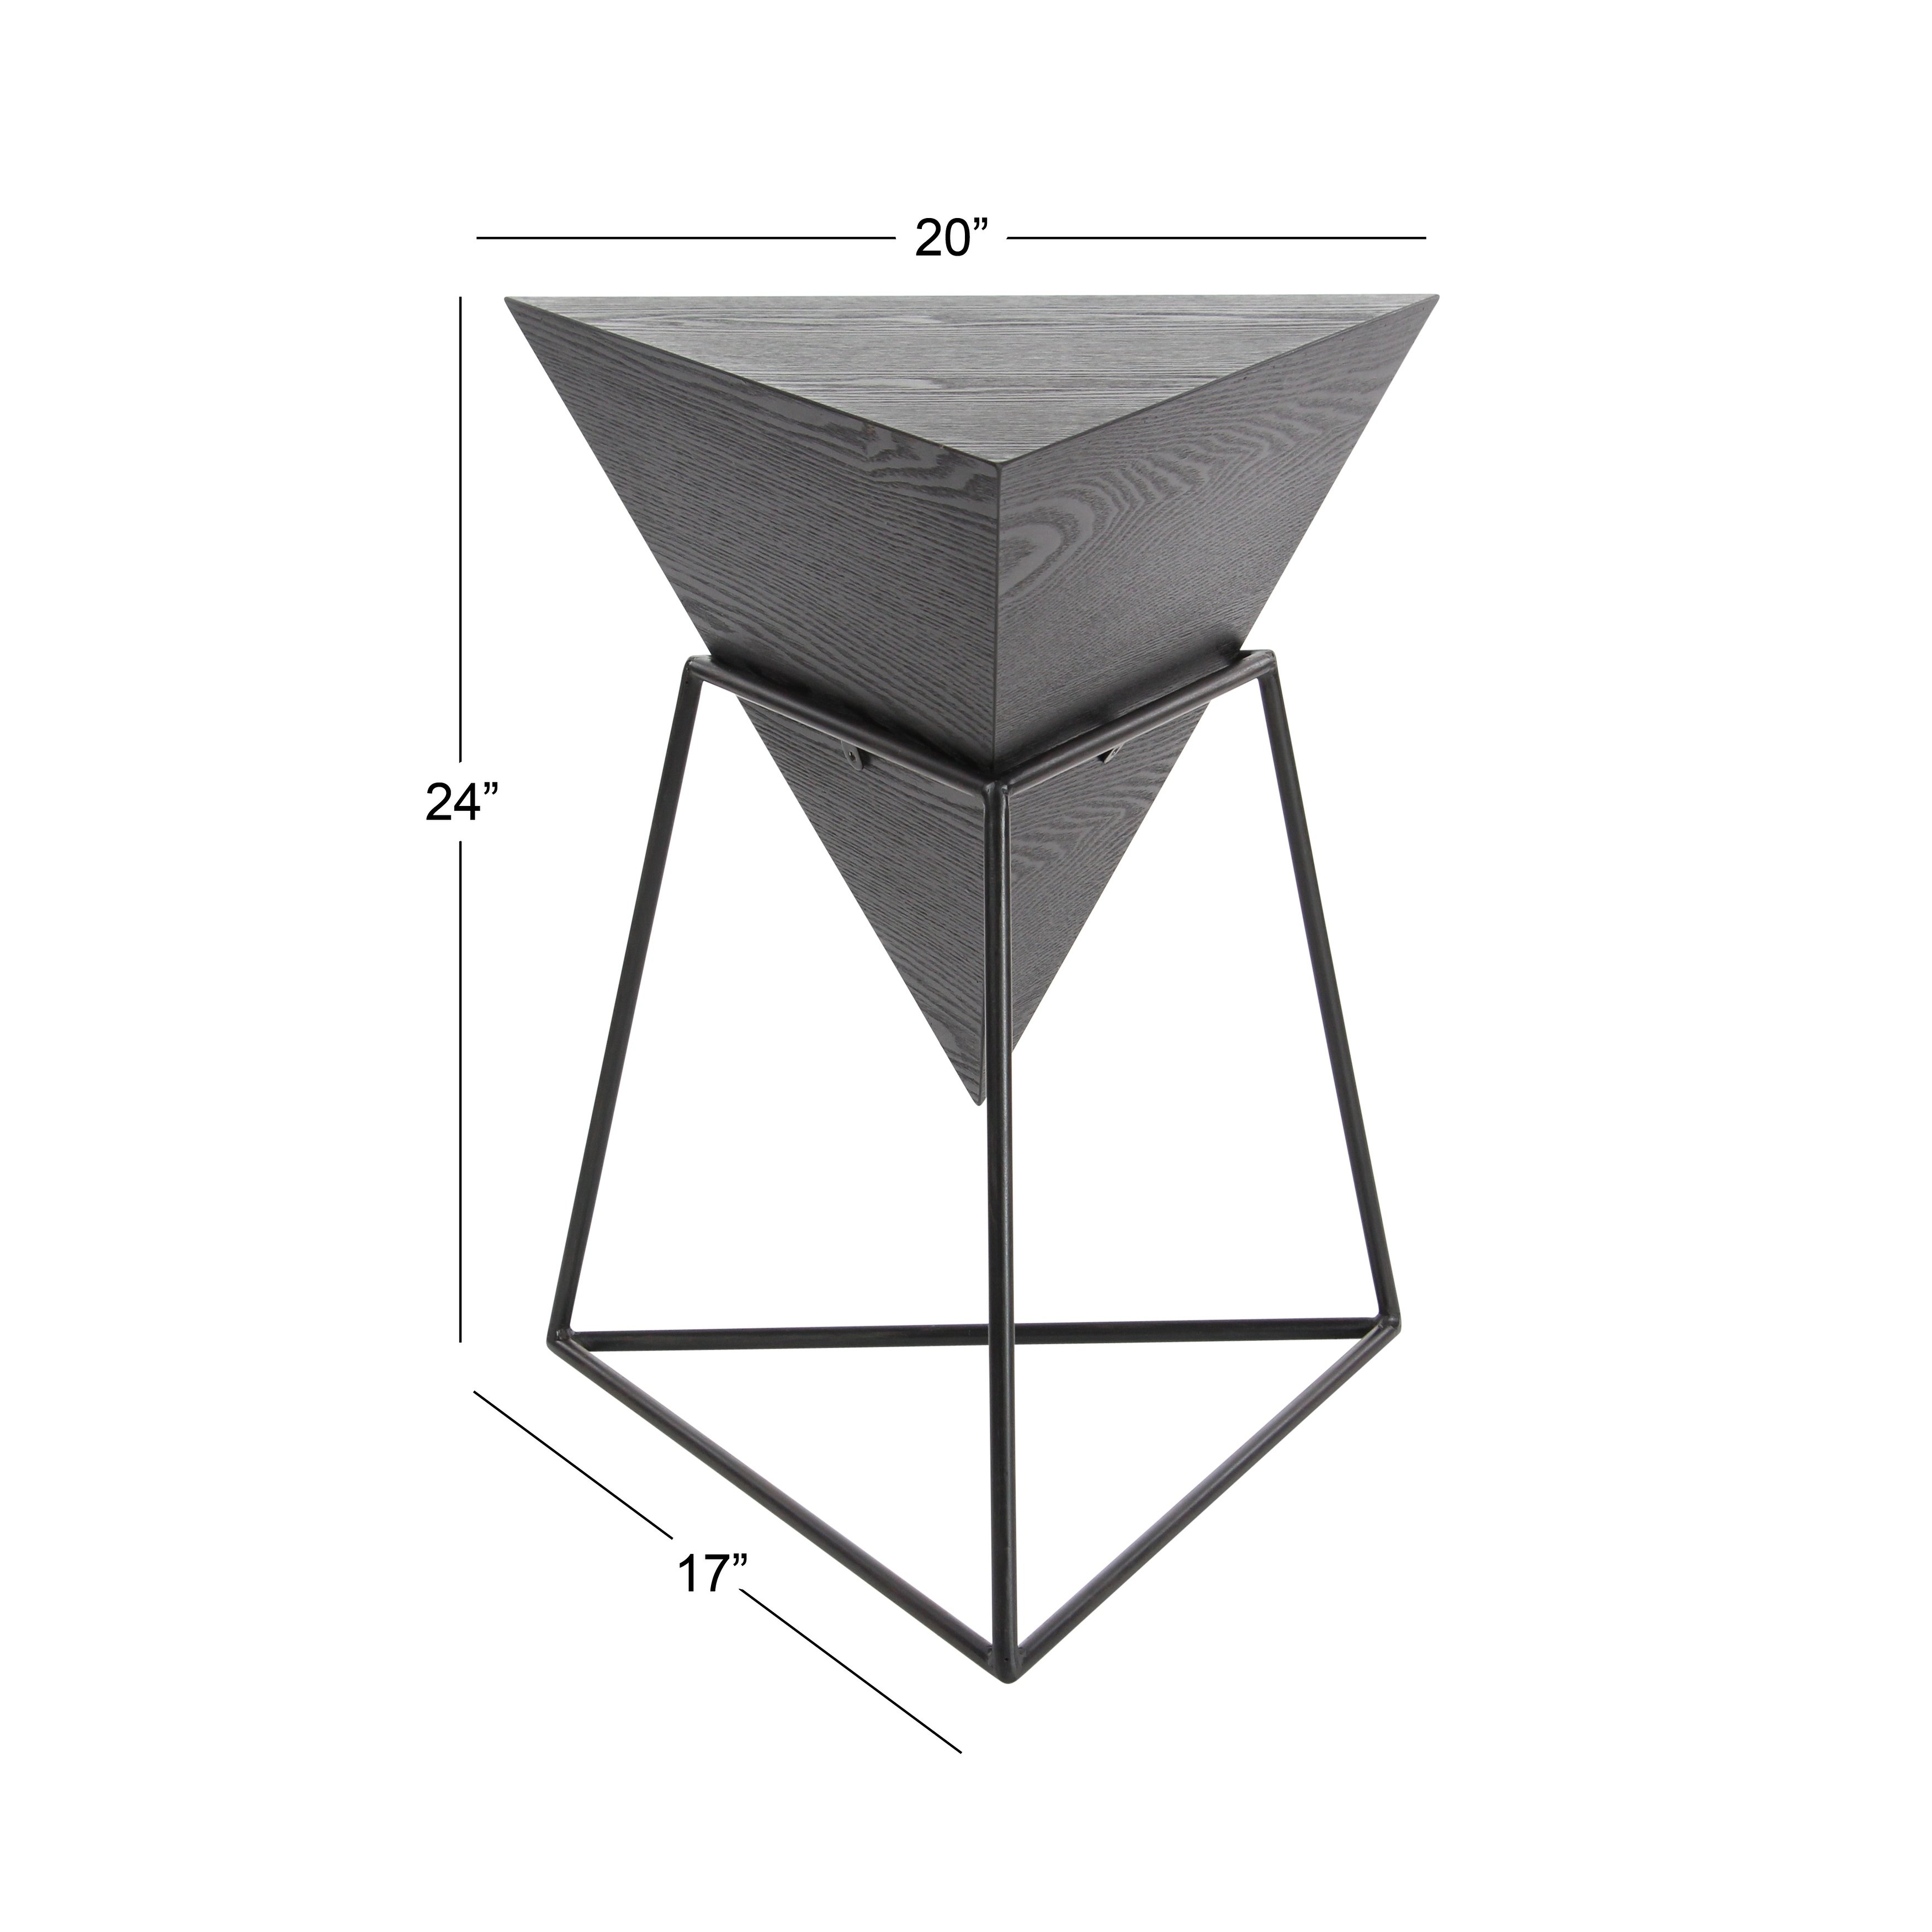 modern inch gray triangular accent table studio triangle corner free shipping today mosaic garden furniture gold marble large black wall clock gallerie wood coffee vintage round